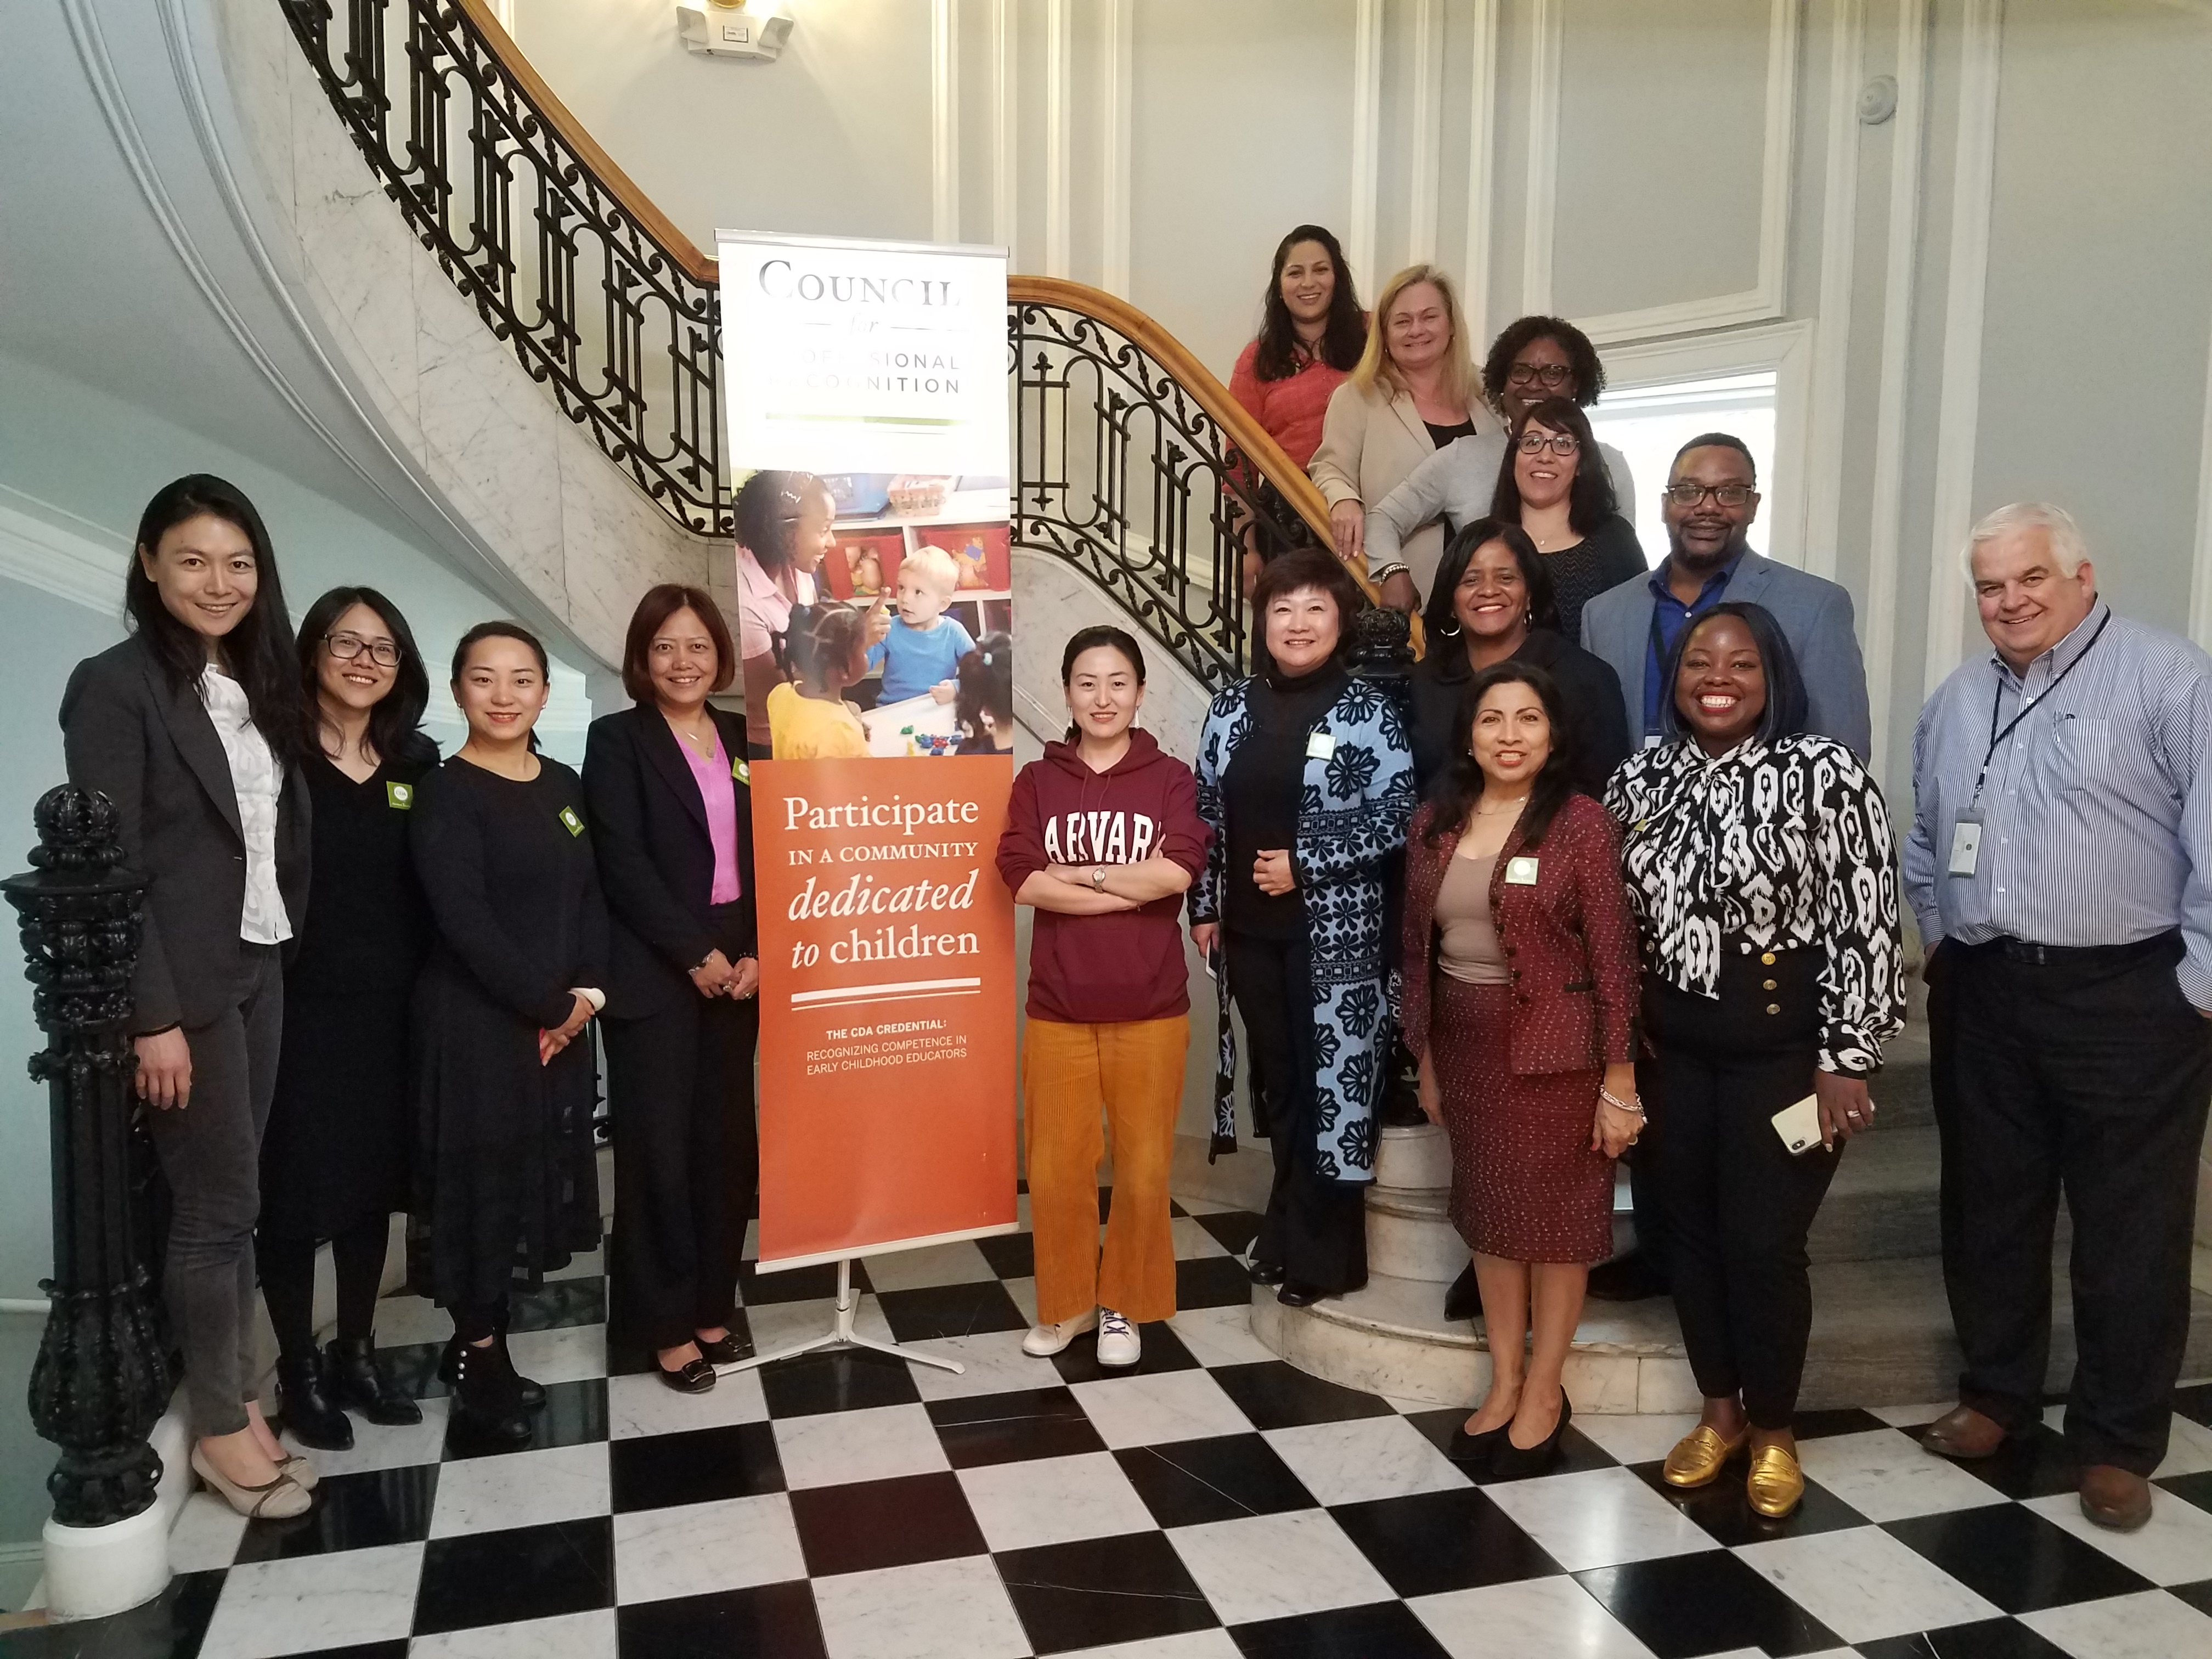 COUNCIL HOSTS DELEGATION OF EDUCATORS FROM CHINA AT DC HEADQUARTERS